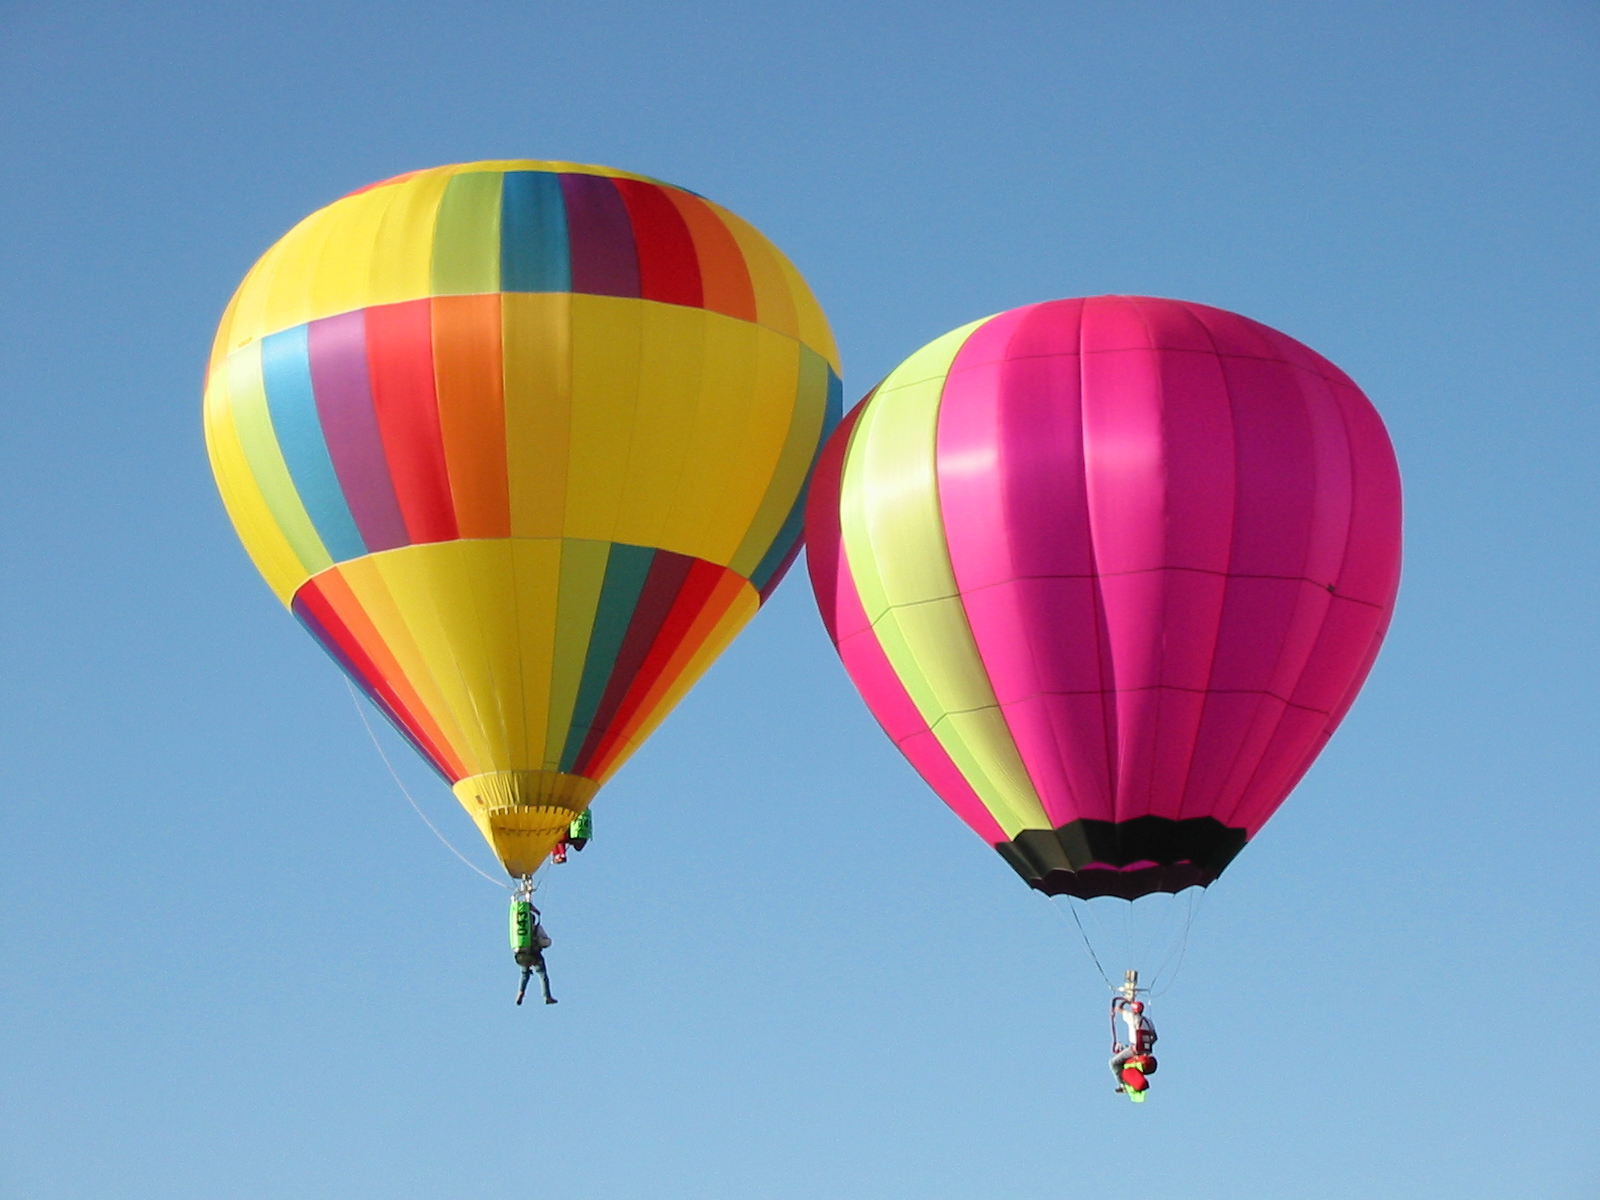 Hot air balloon - Wikipedia, the free encyclopedia